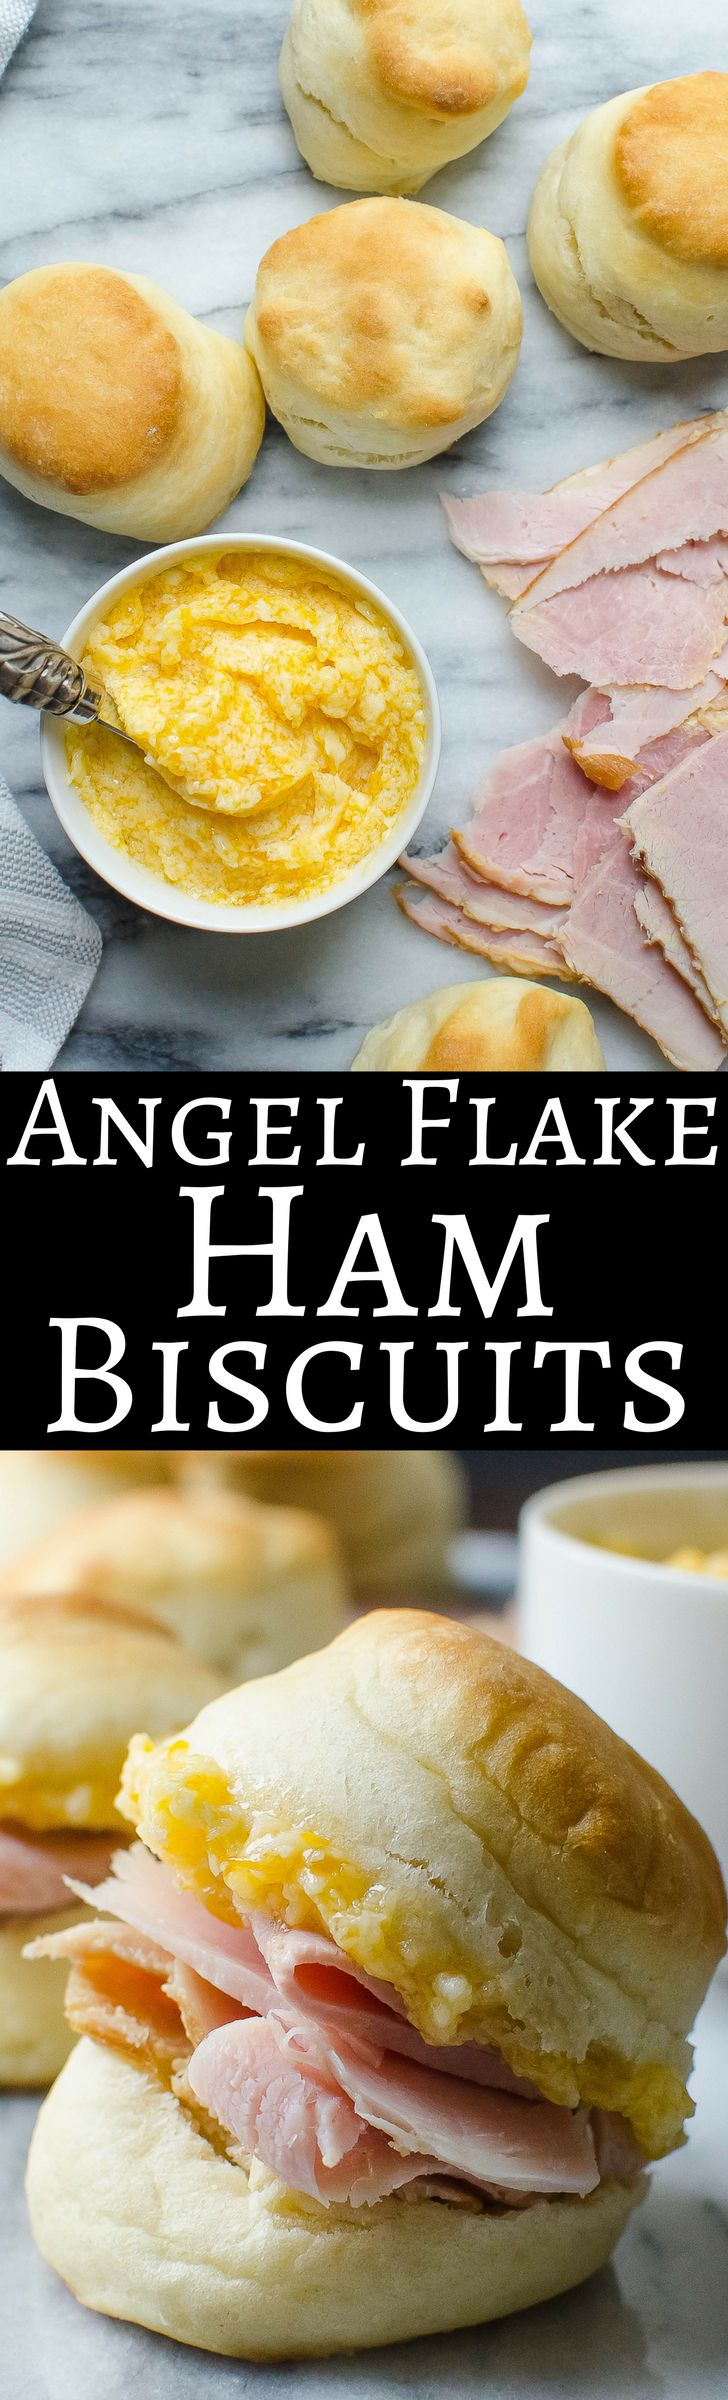 Angel Flake Biscuits with Salty Ham